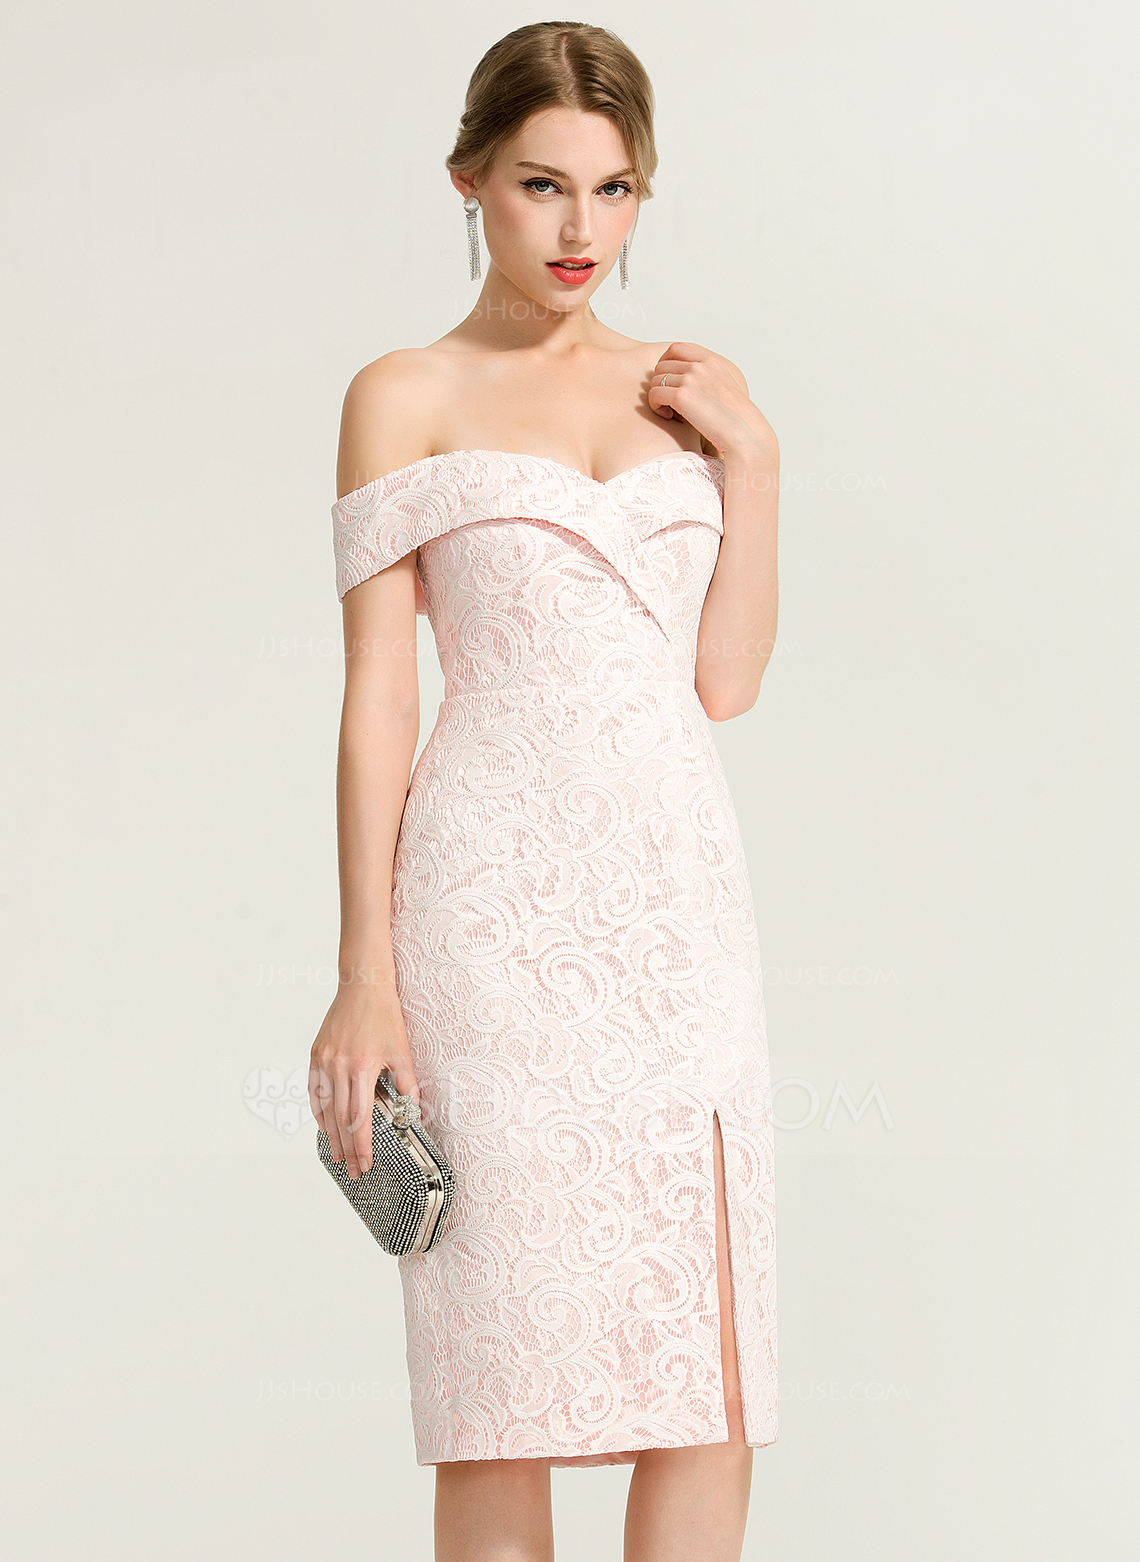 f72c439924d3 Sheath/Column Off-the-Shoulder Knee-Length Lace Cocktail Dress. Loading zoom